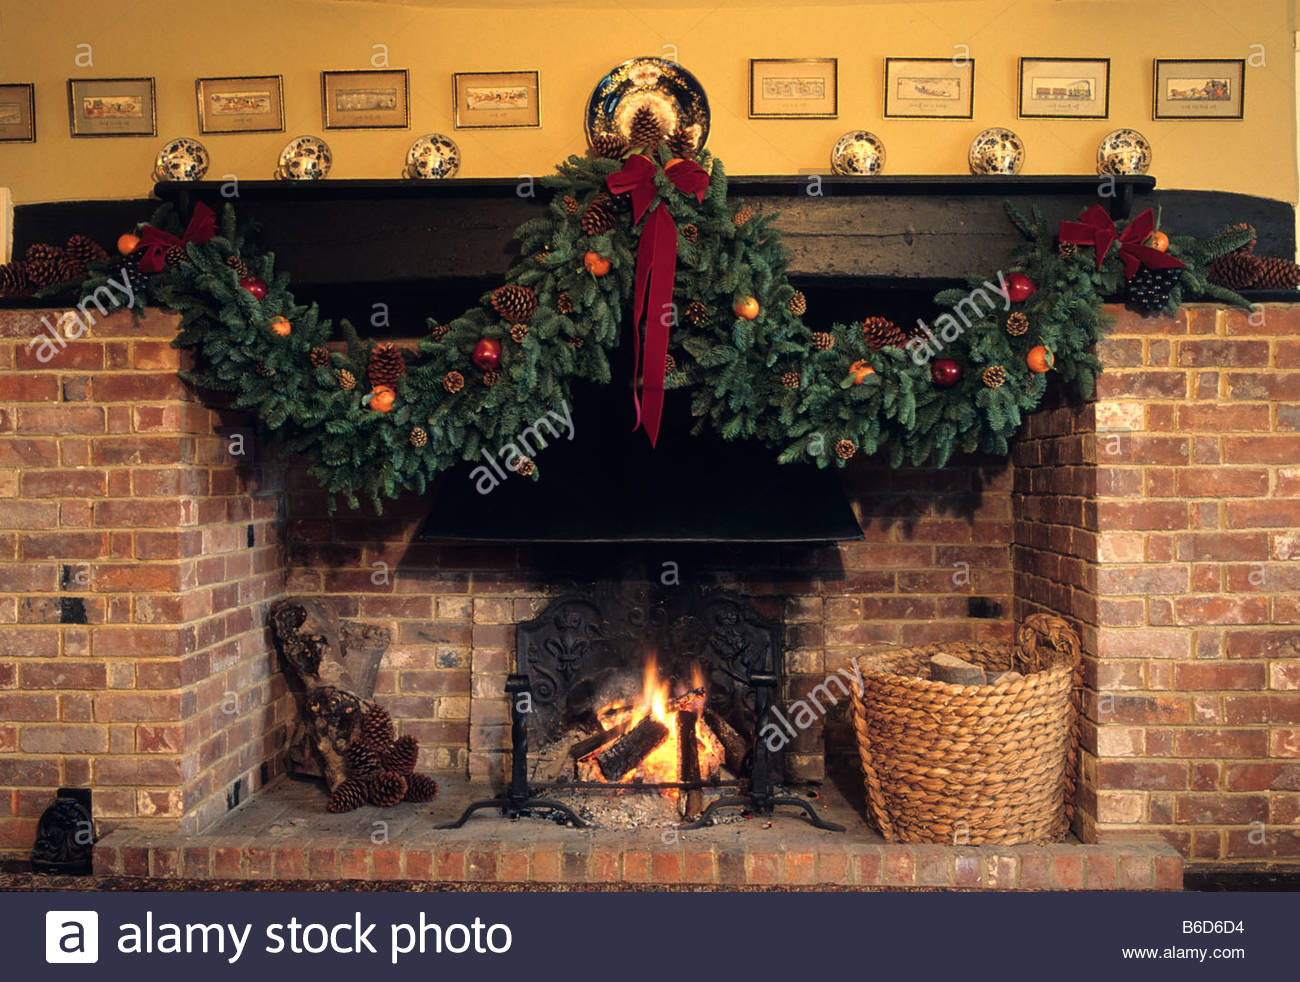 coates manor sussex christmas decorations fireplace with garland